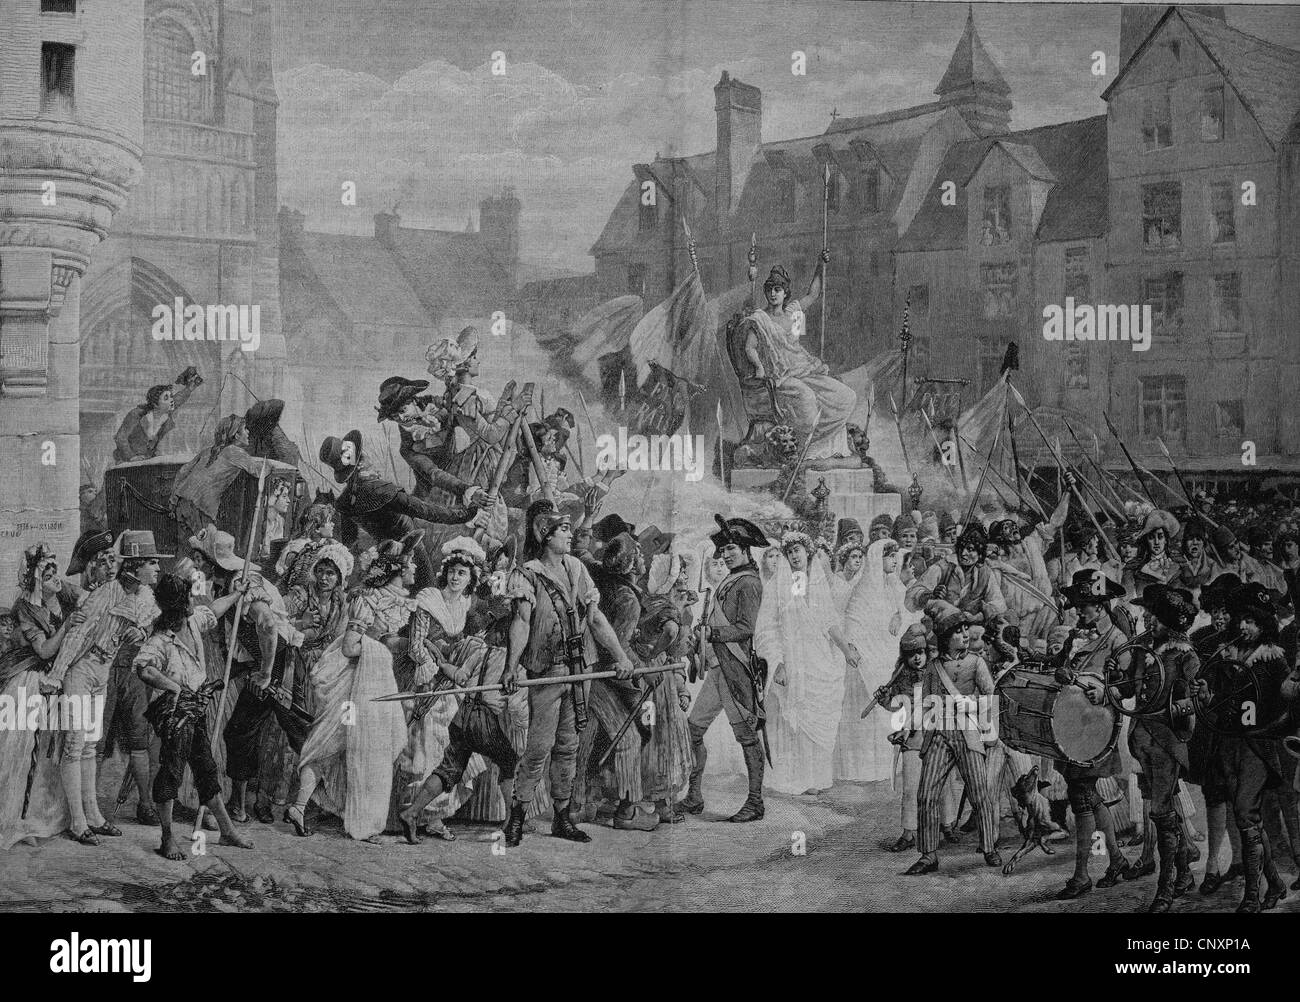 The celebration of the Goddess of Reason in Paris in 1793, the French Cult of Reason, Culte de la Raison, belonged - Stock Image